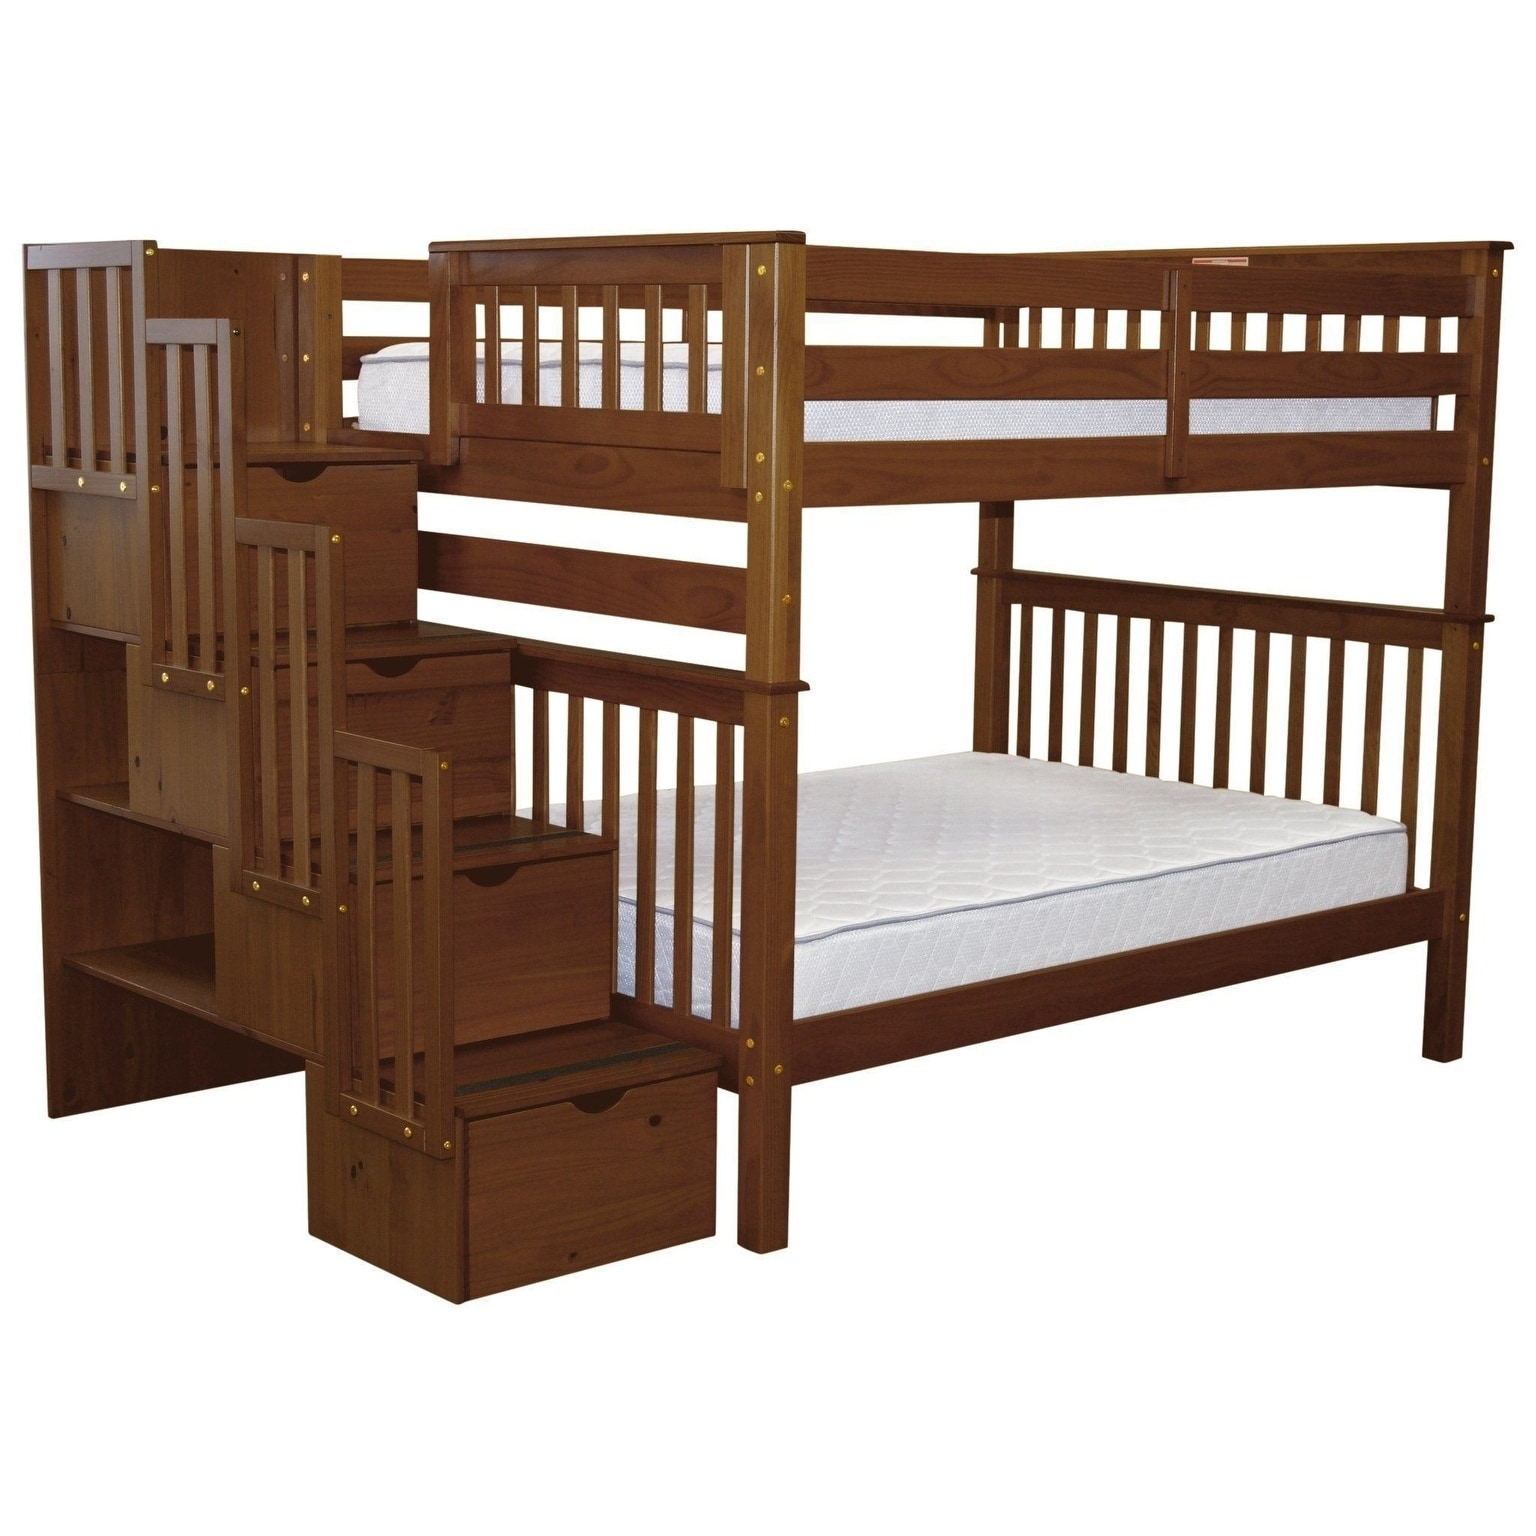 Shop Bedz King Espresso Pine Stairway Full Over Full Bunk Beds With